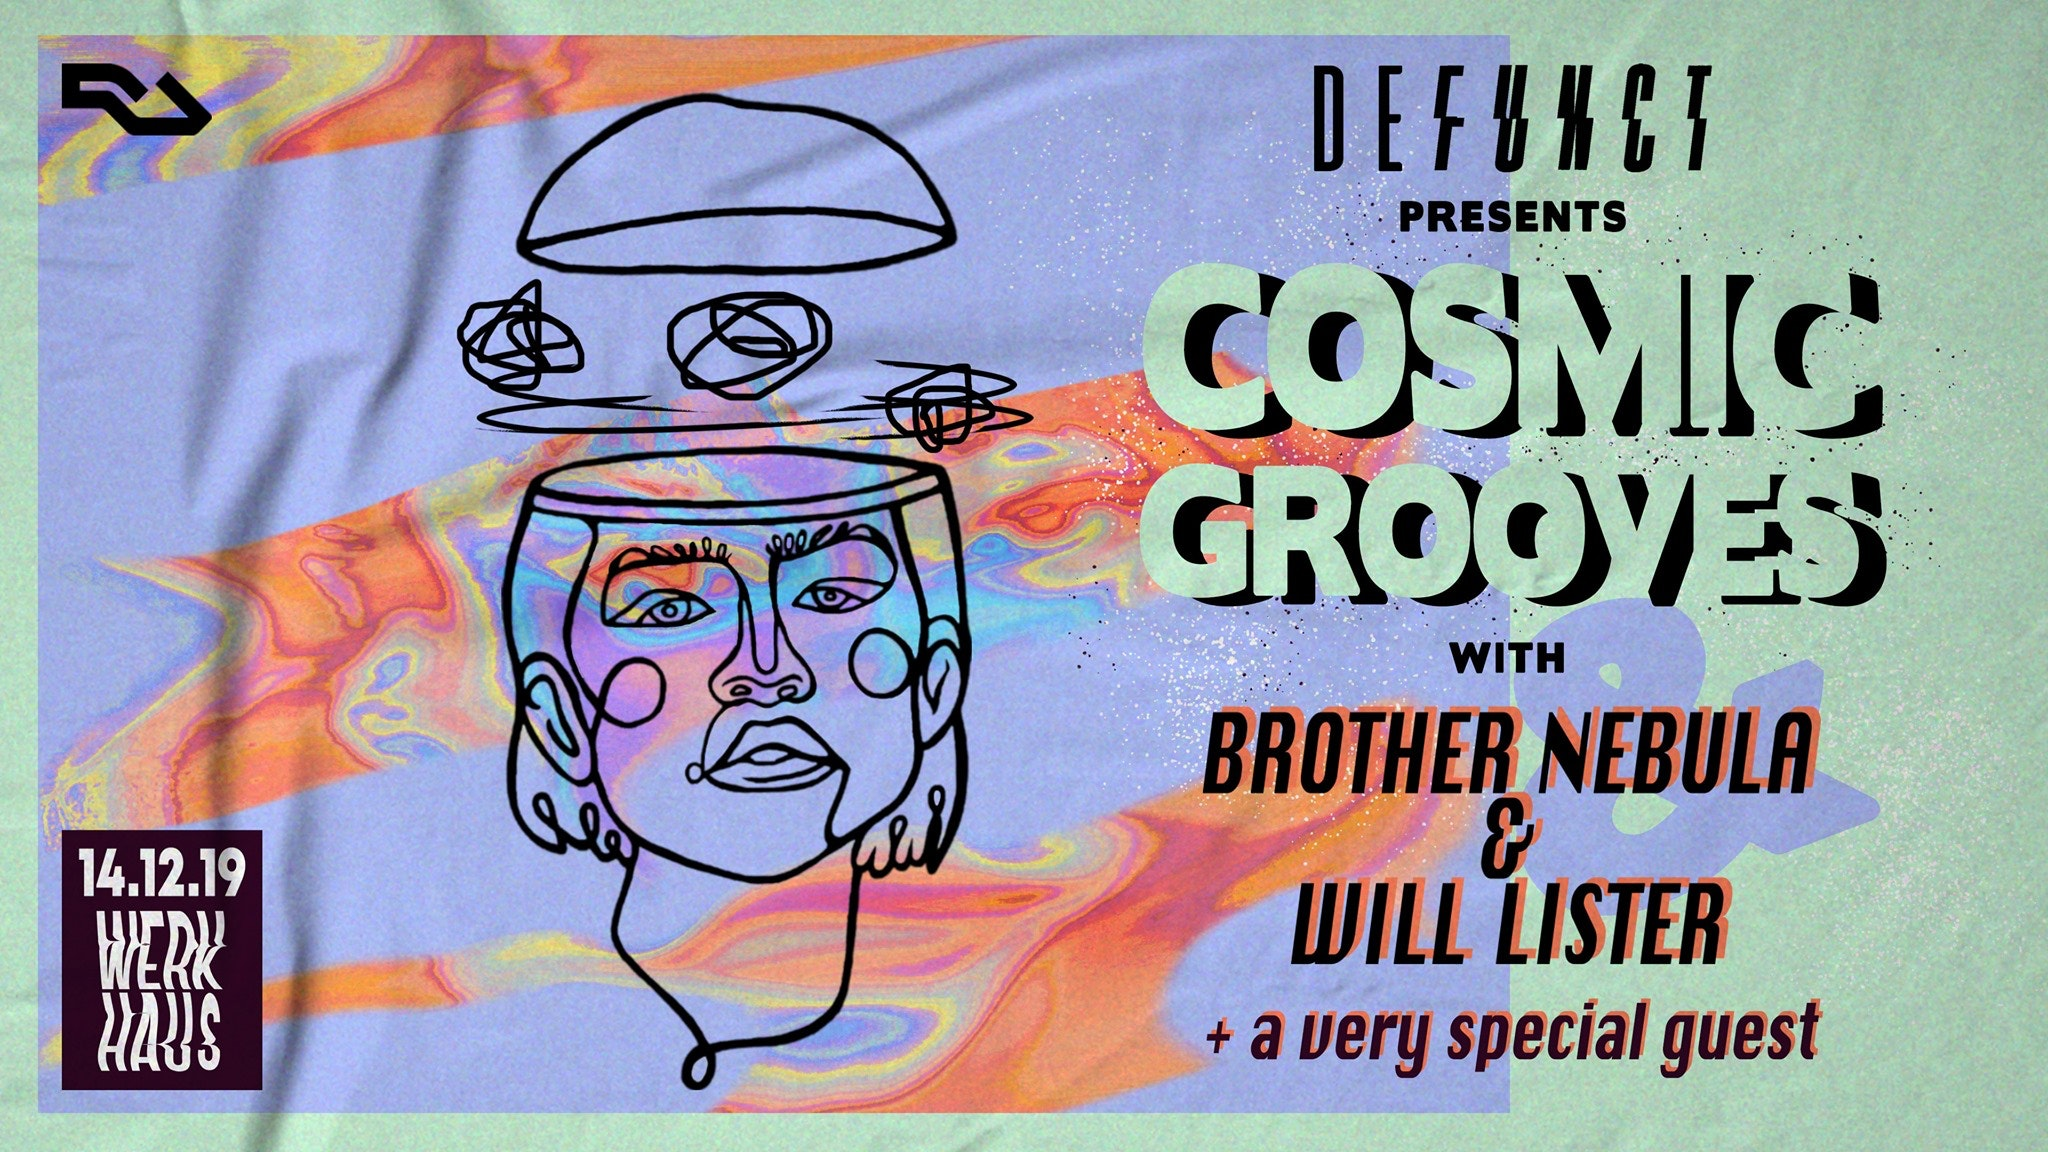 Defunct's Cosmic Grooves with Will Lister & Brother Nebula